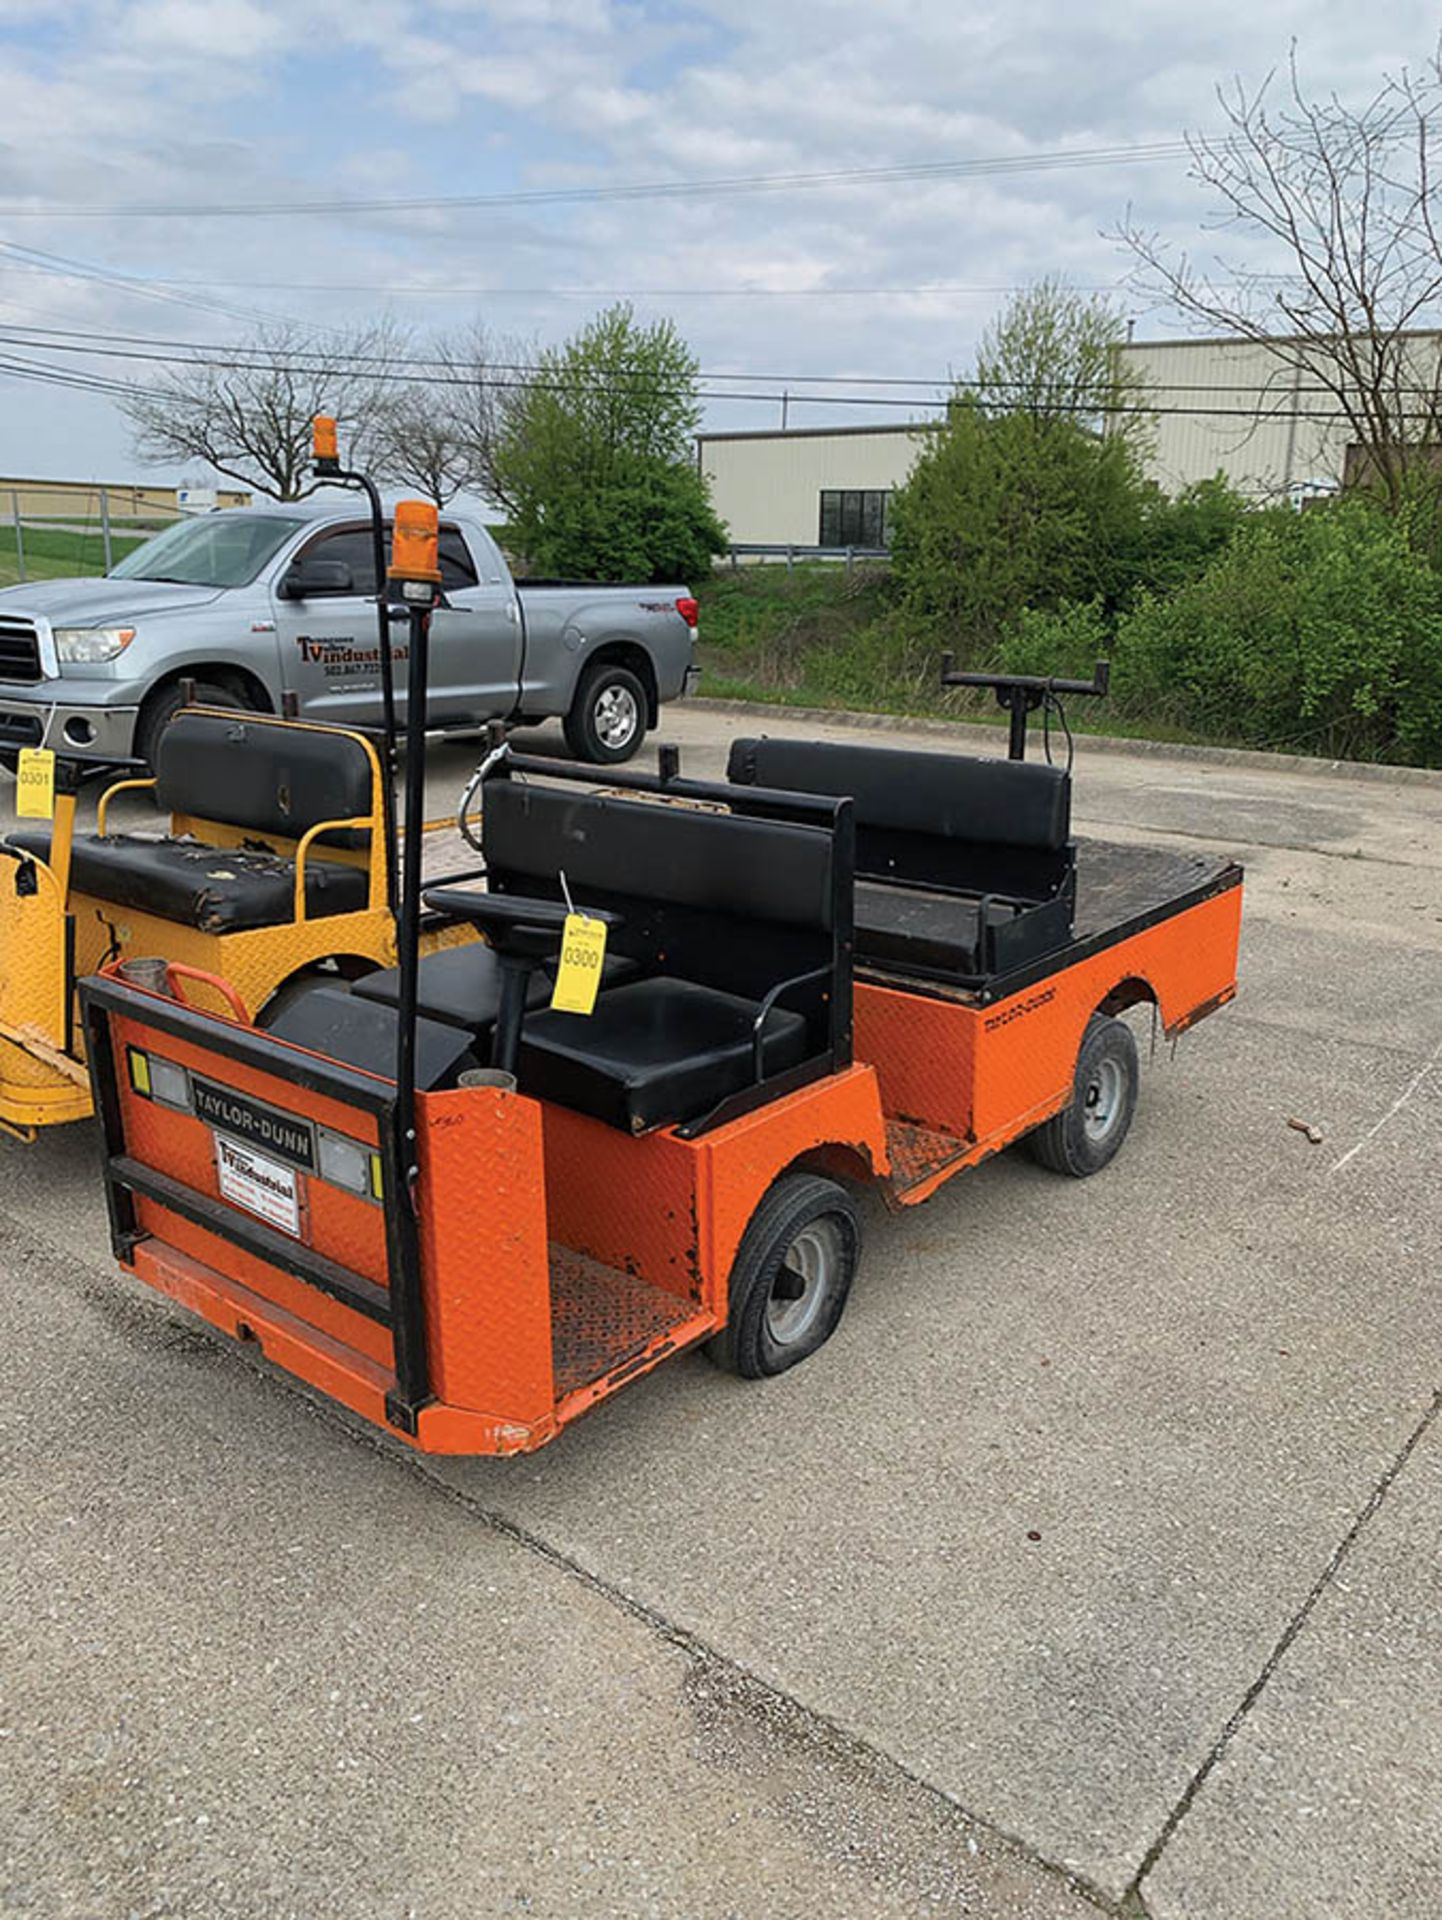 Lot 300 - TAYLOR-DUNN 4-SEATER RIDE-ON FLATBED CART, (2012), ELECTRIC, 883 HOURS, MODEL BO-210-36, S/N 187187